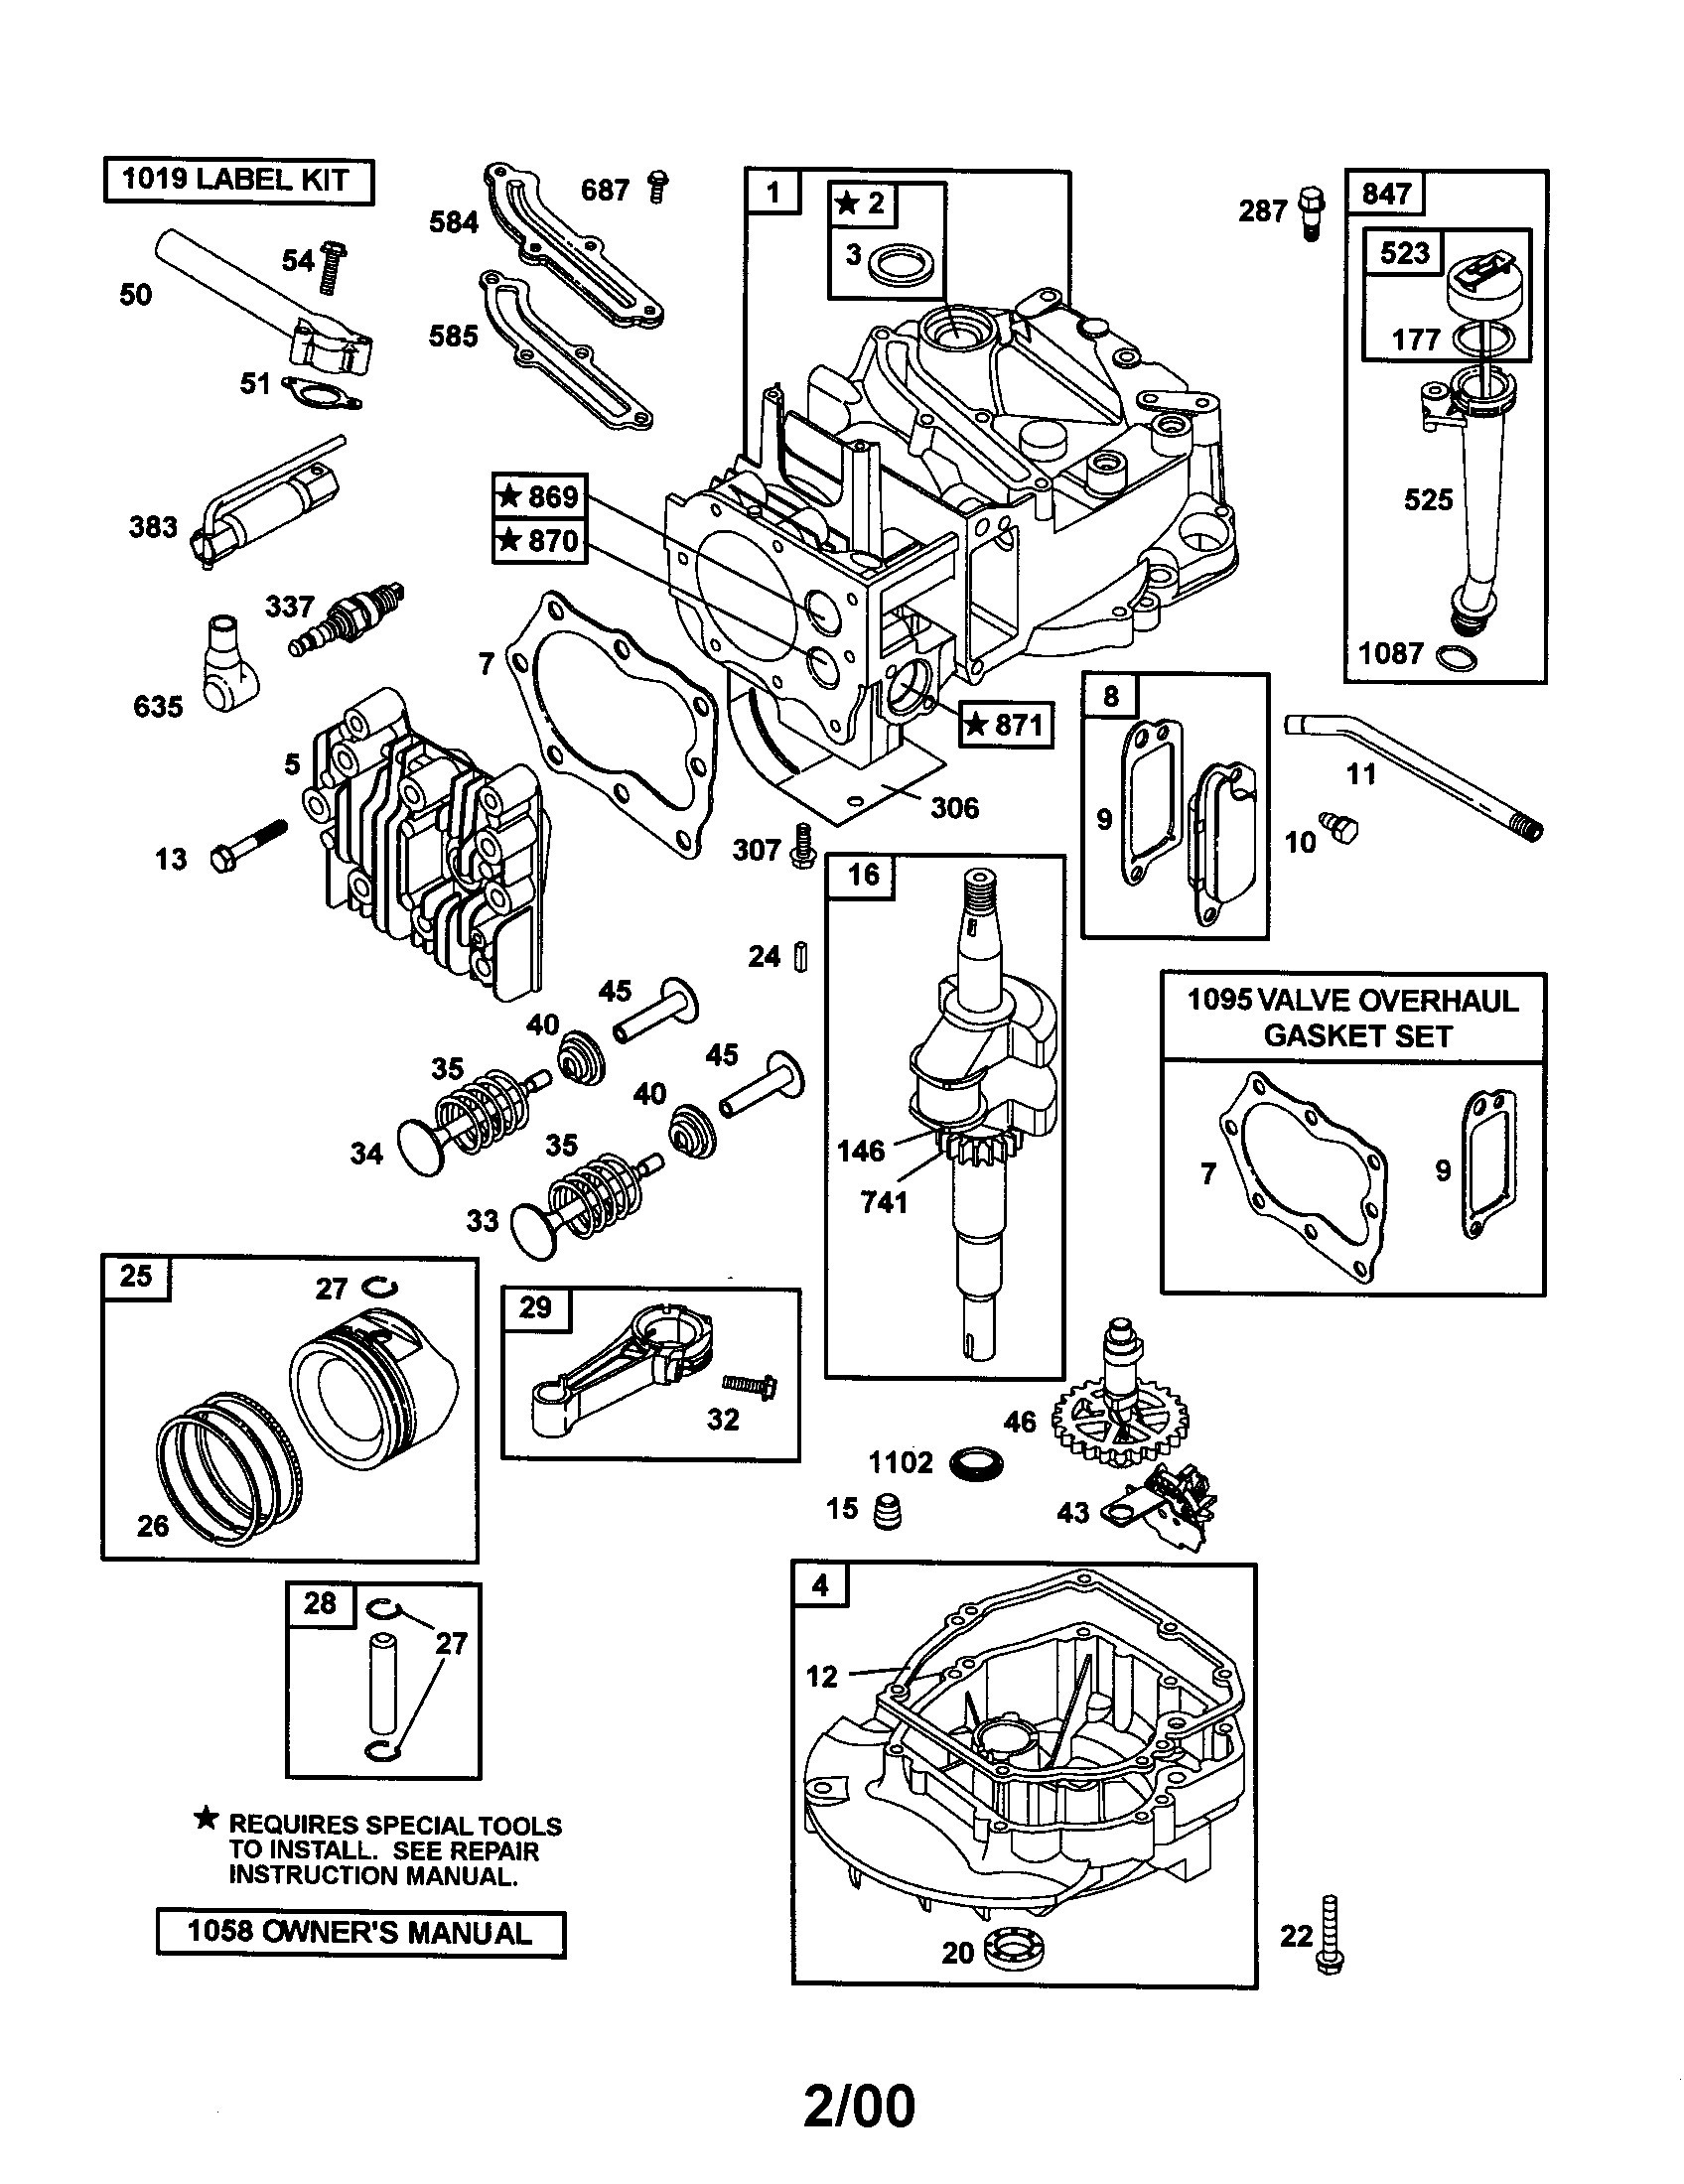 16 Hp Briggs And Stratton Wiring Diagram Free Picture Schematic Kohler 18hp Bs Vanguard Trusted Ignition